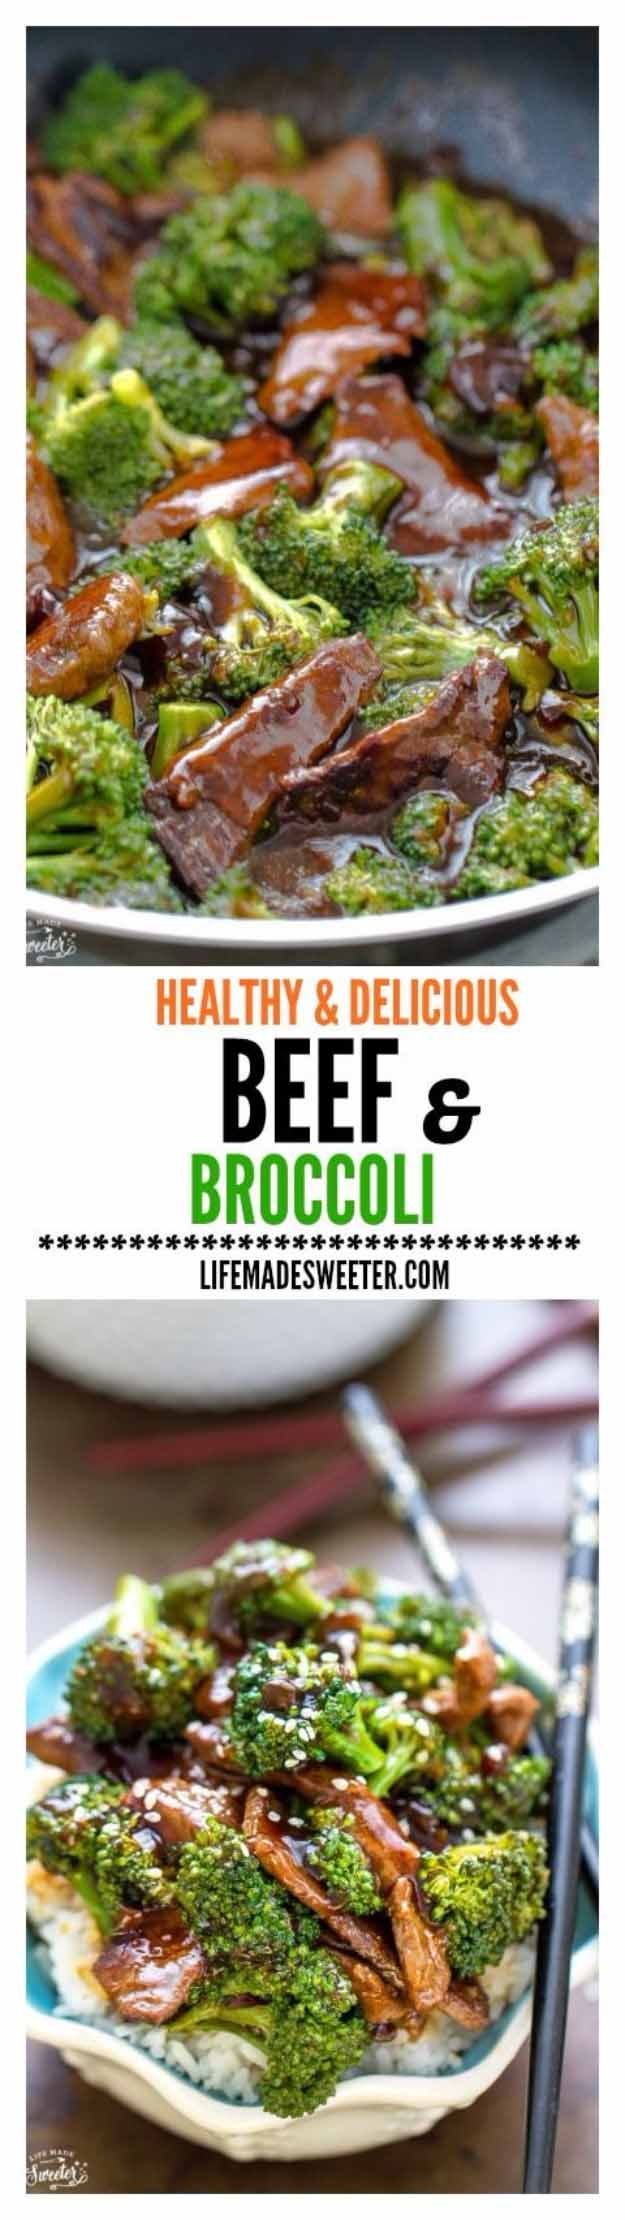 Quick and Easy Healthy Dinner Recipes - Beef and Broccoli- Awesome Recipes For Weight Loss - Great Receipes For One, For Two or For Family Gatherings - Quick Recipes for When You're On A Budget - Chicken and Zucchini Dishes Under 500 Calories - Quick Low Carb Dinners With Beef or Shrimp or Even Vegetarian - Amazing Dishes For Picky Eaters - https://thegoddess.com/easy-healthy-dinner-receipes